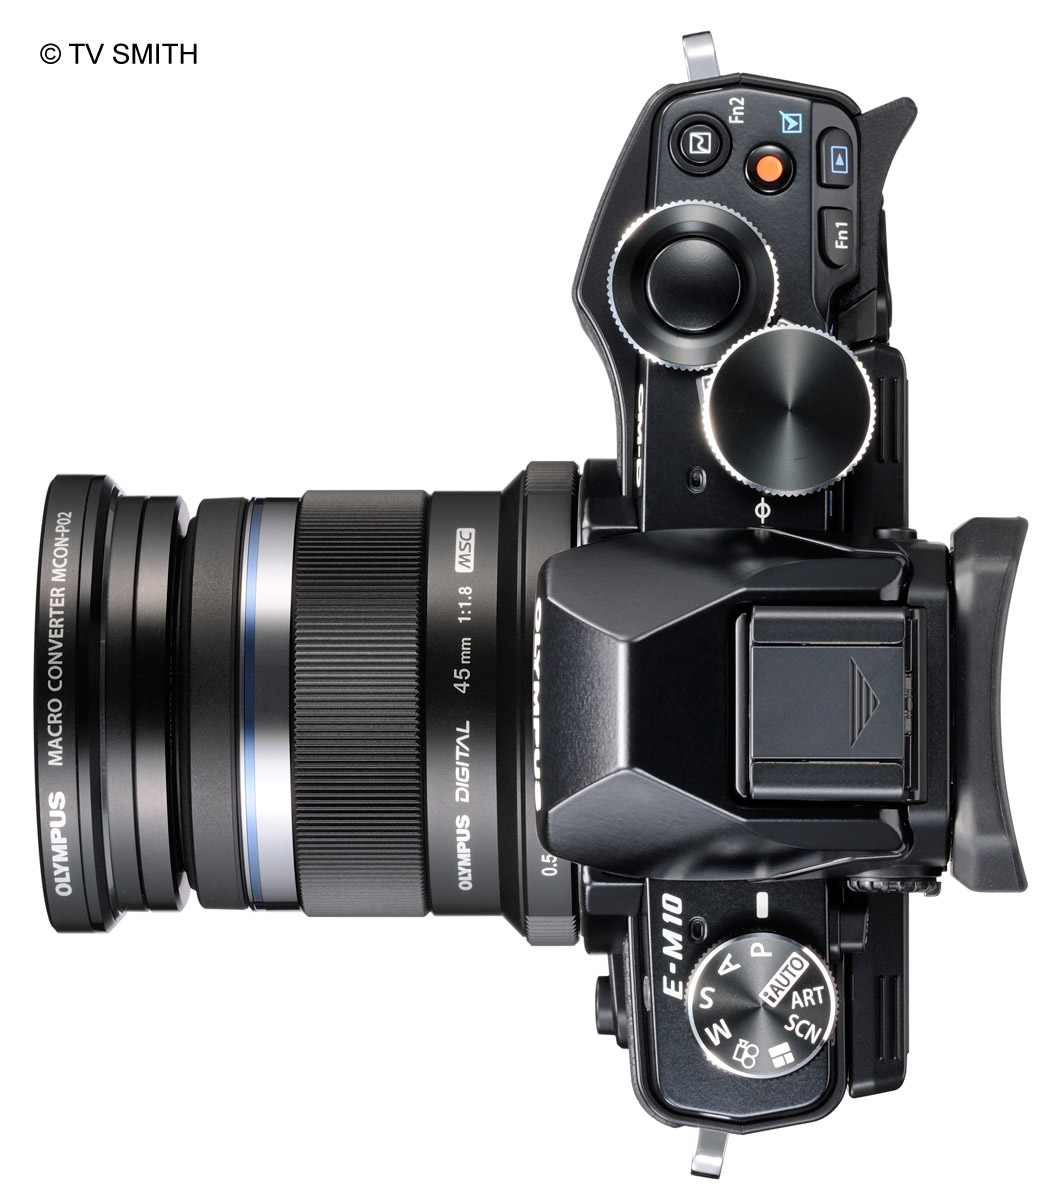 The New Olympus OM-D EM-10 shown here with the 45mm lens and macro convertor